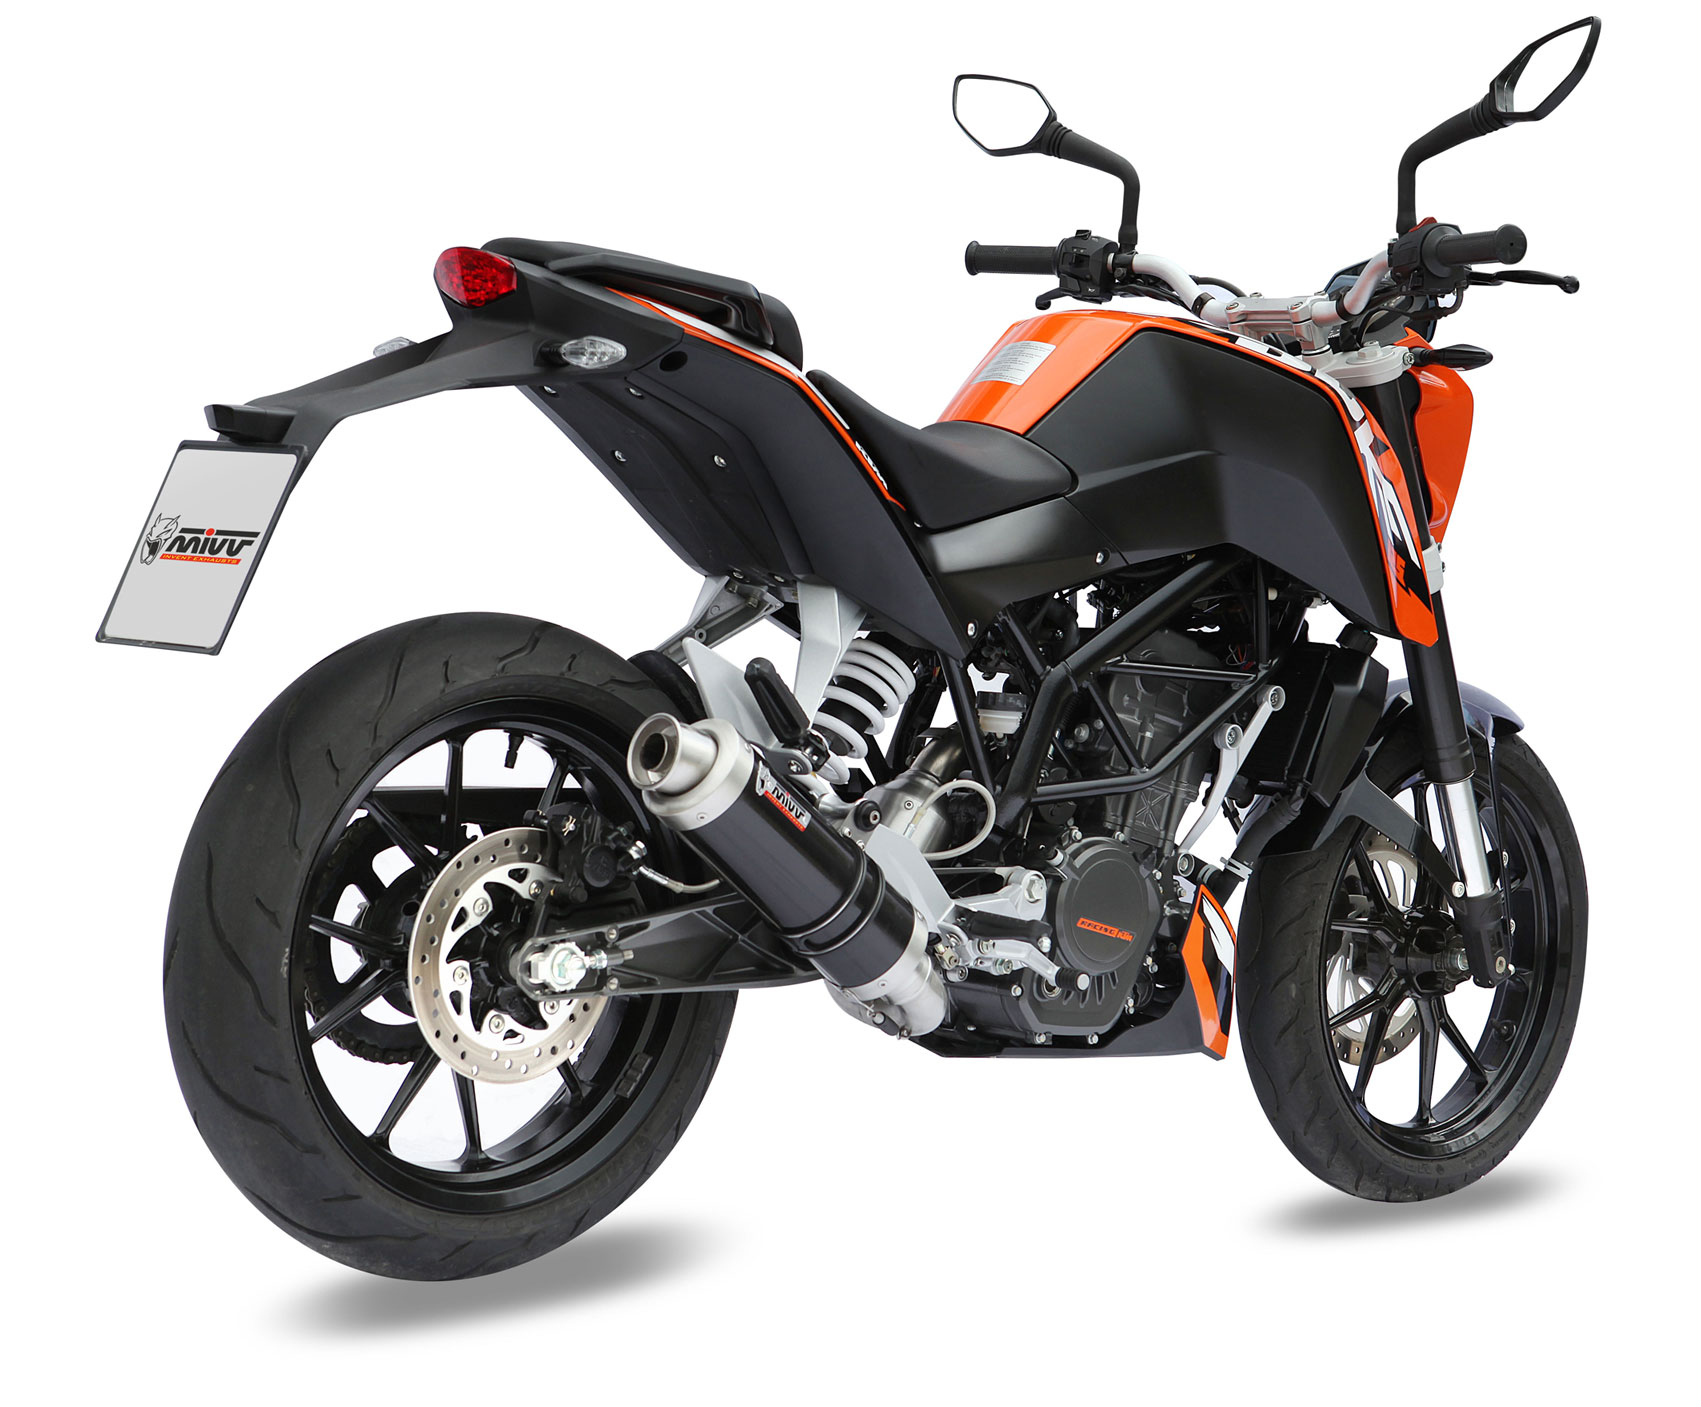 New: MIVV exhausts for KTM Duke 125 and 200